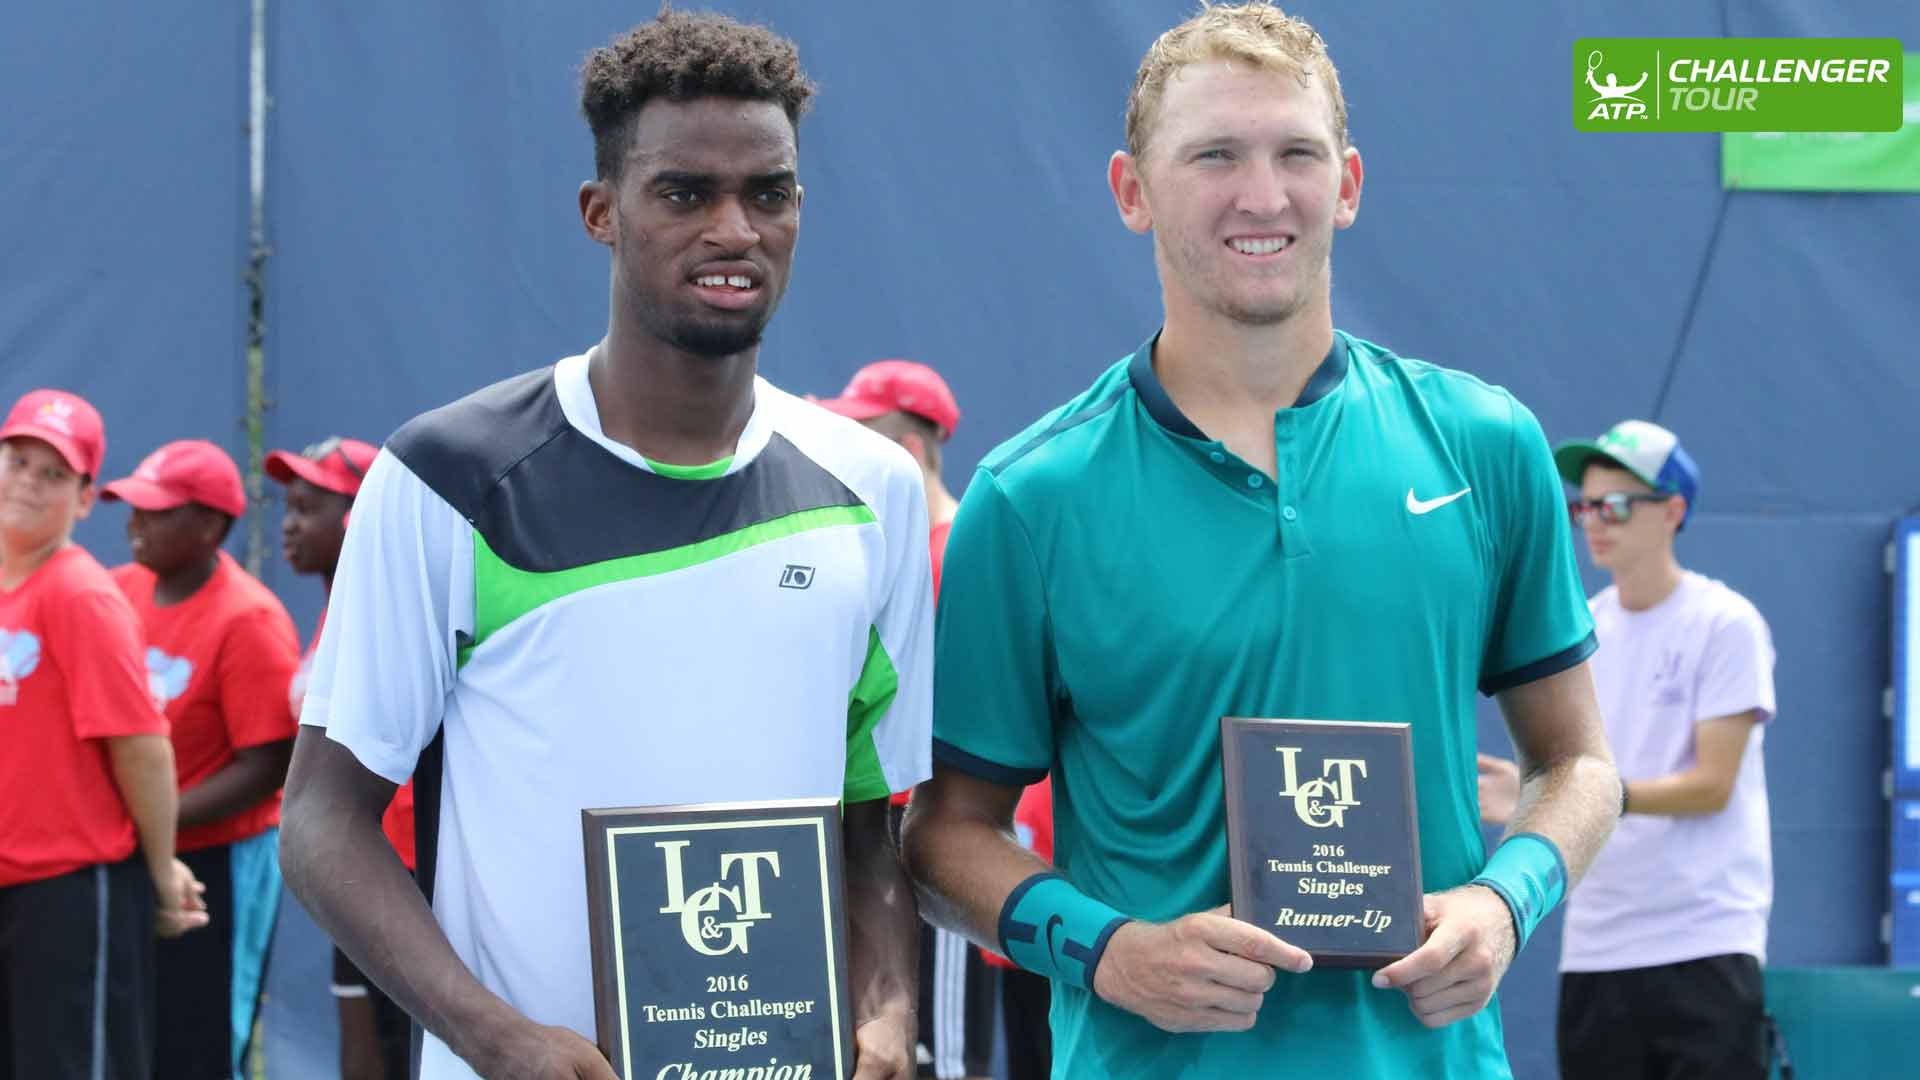 Darian King (L) prevails over Mitchell Krueger at the ATP Challenger Tour event in Binghamton.